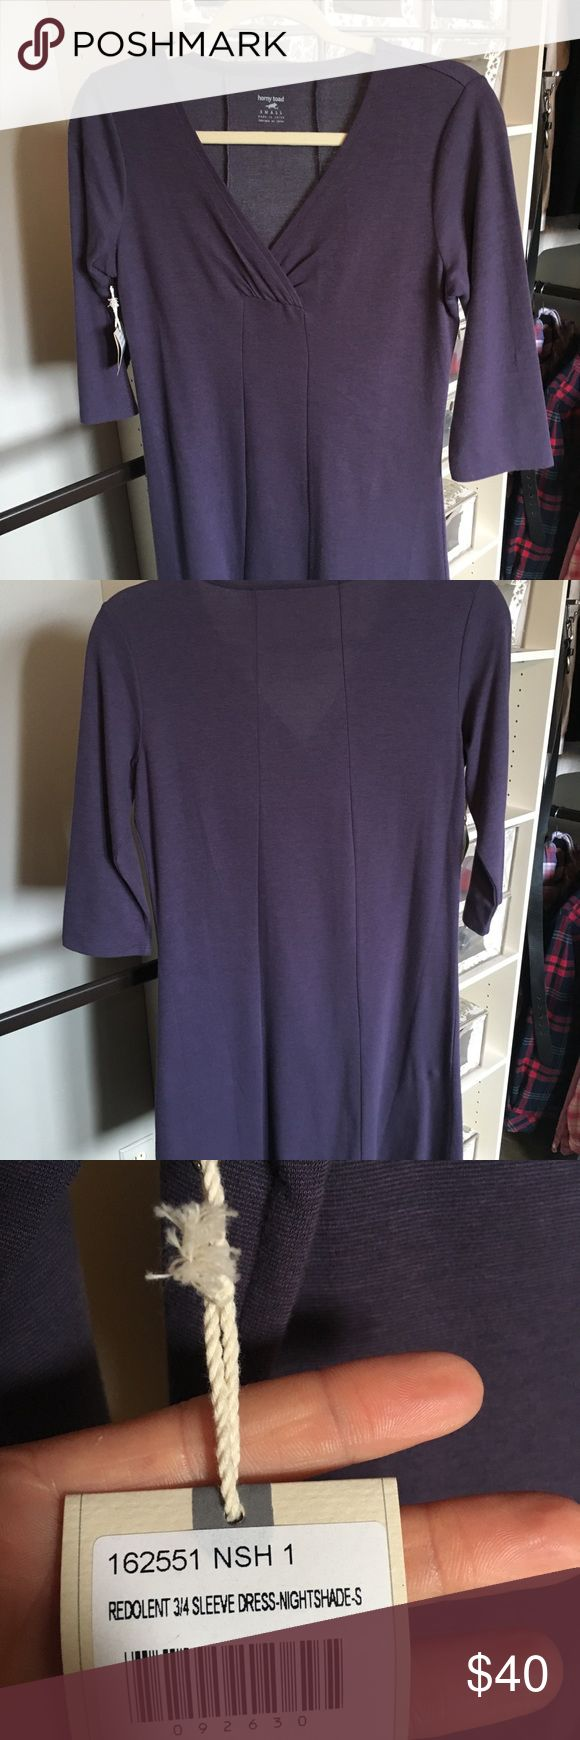 Horny Toad athletic dress Horny Toad dress ordered from Title Nine with tags still on it..NEVER WORN.  3/4 sleeve, knee length, size small. Horny Toad Dresses Long Sleeve